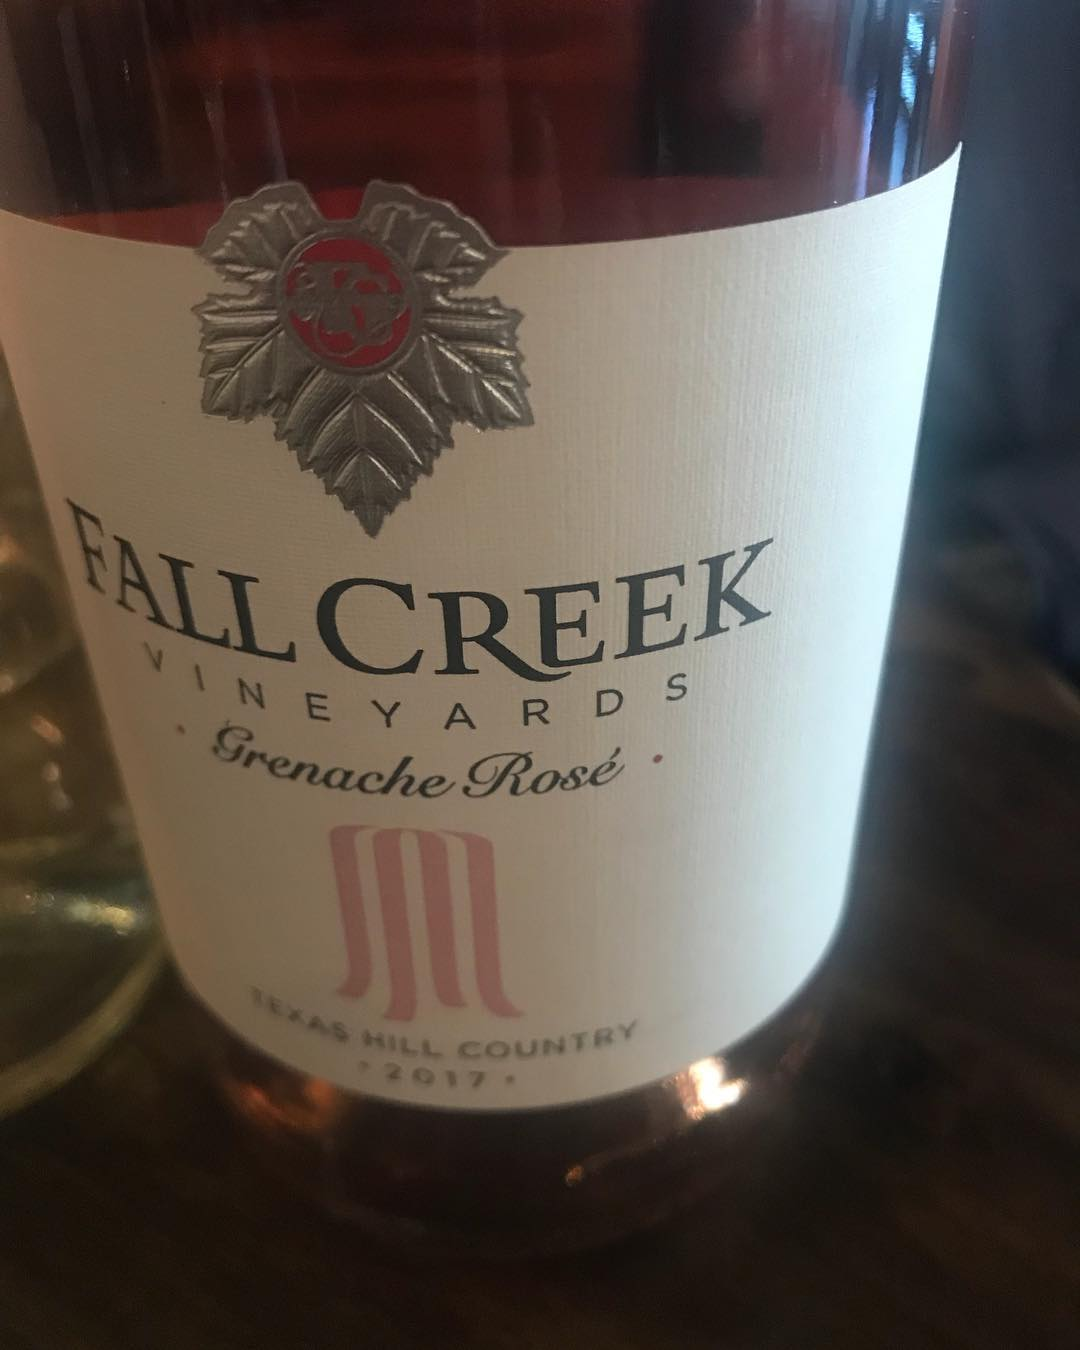 Fall Creek Wines Tasting